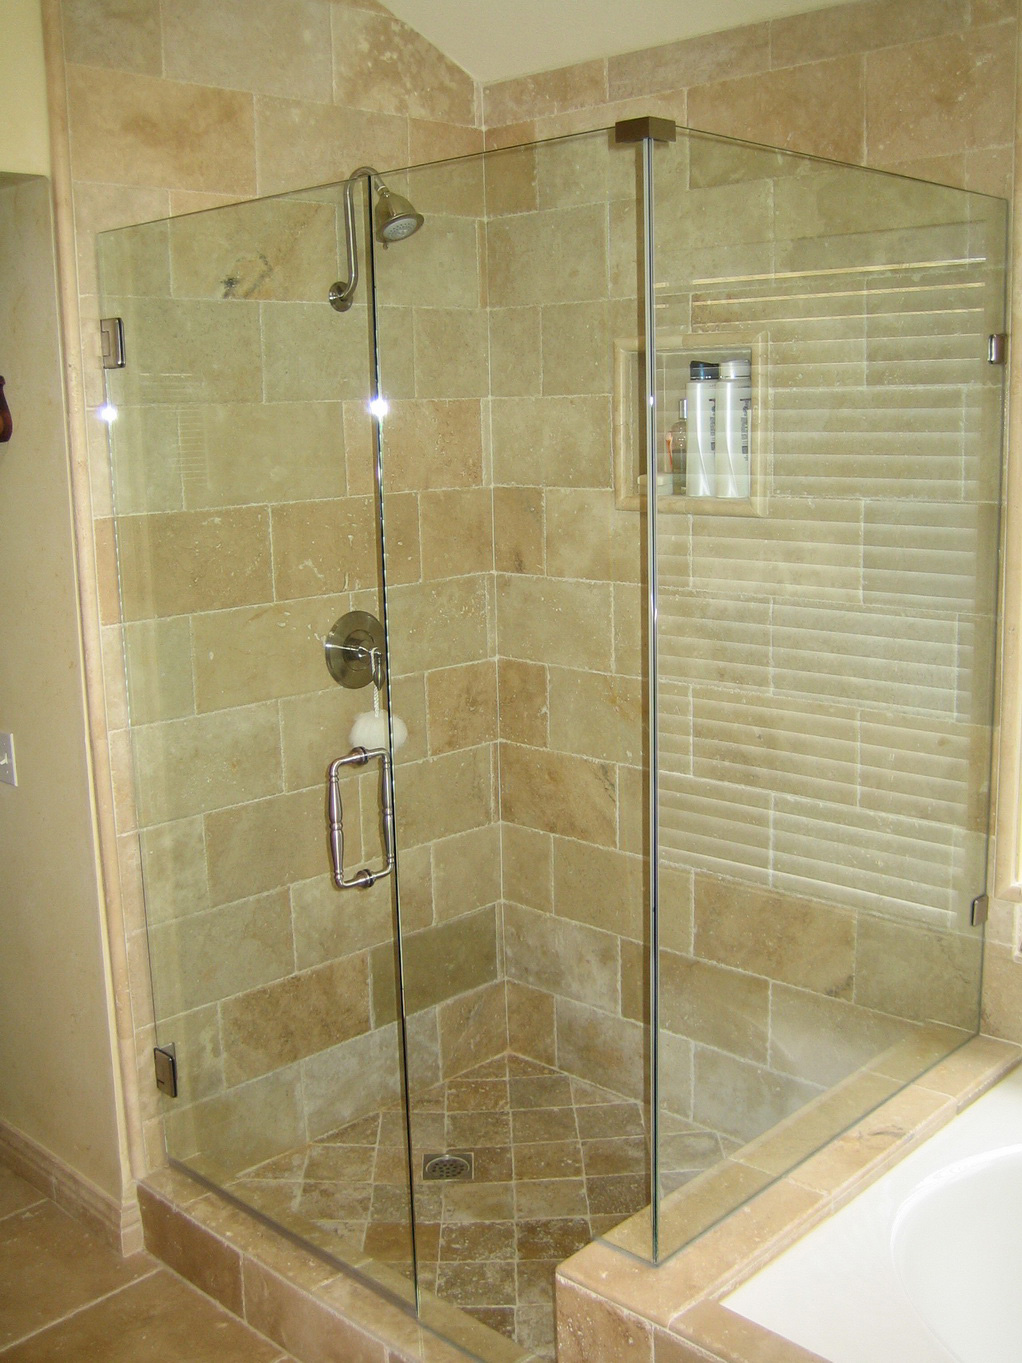 Creative frameless corner shower doors featured top frameless glass shower doors bathroom decorating ideas for small bathrooms